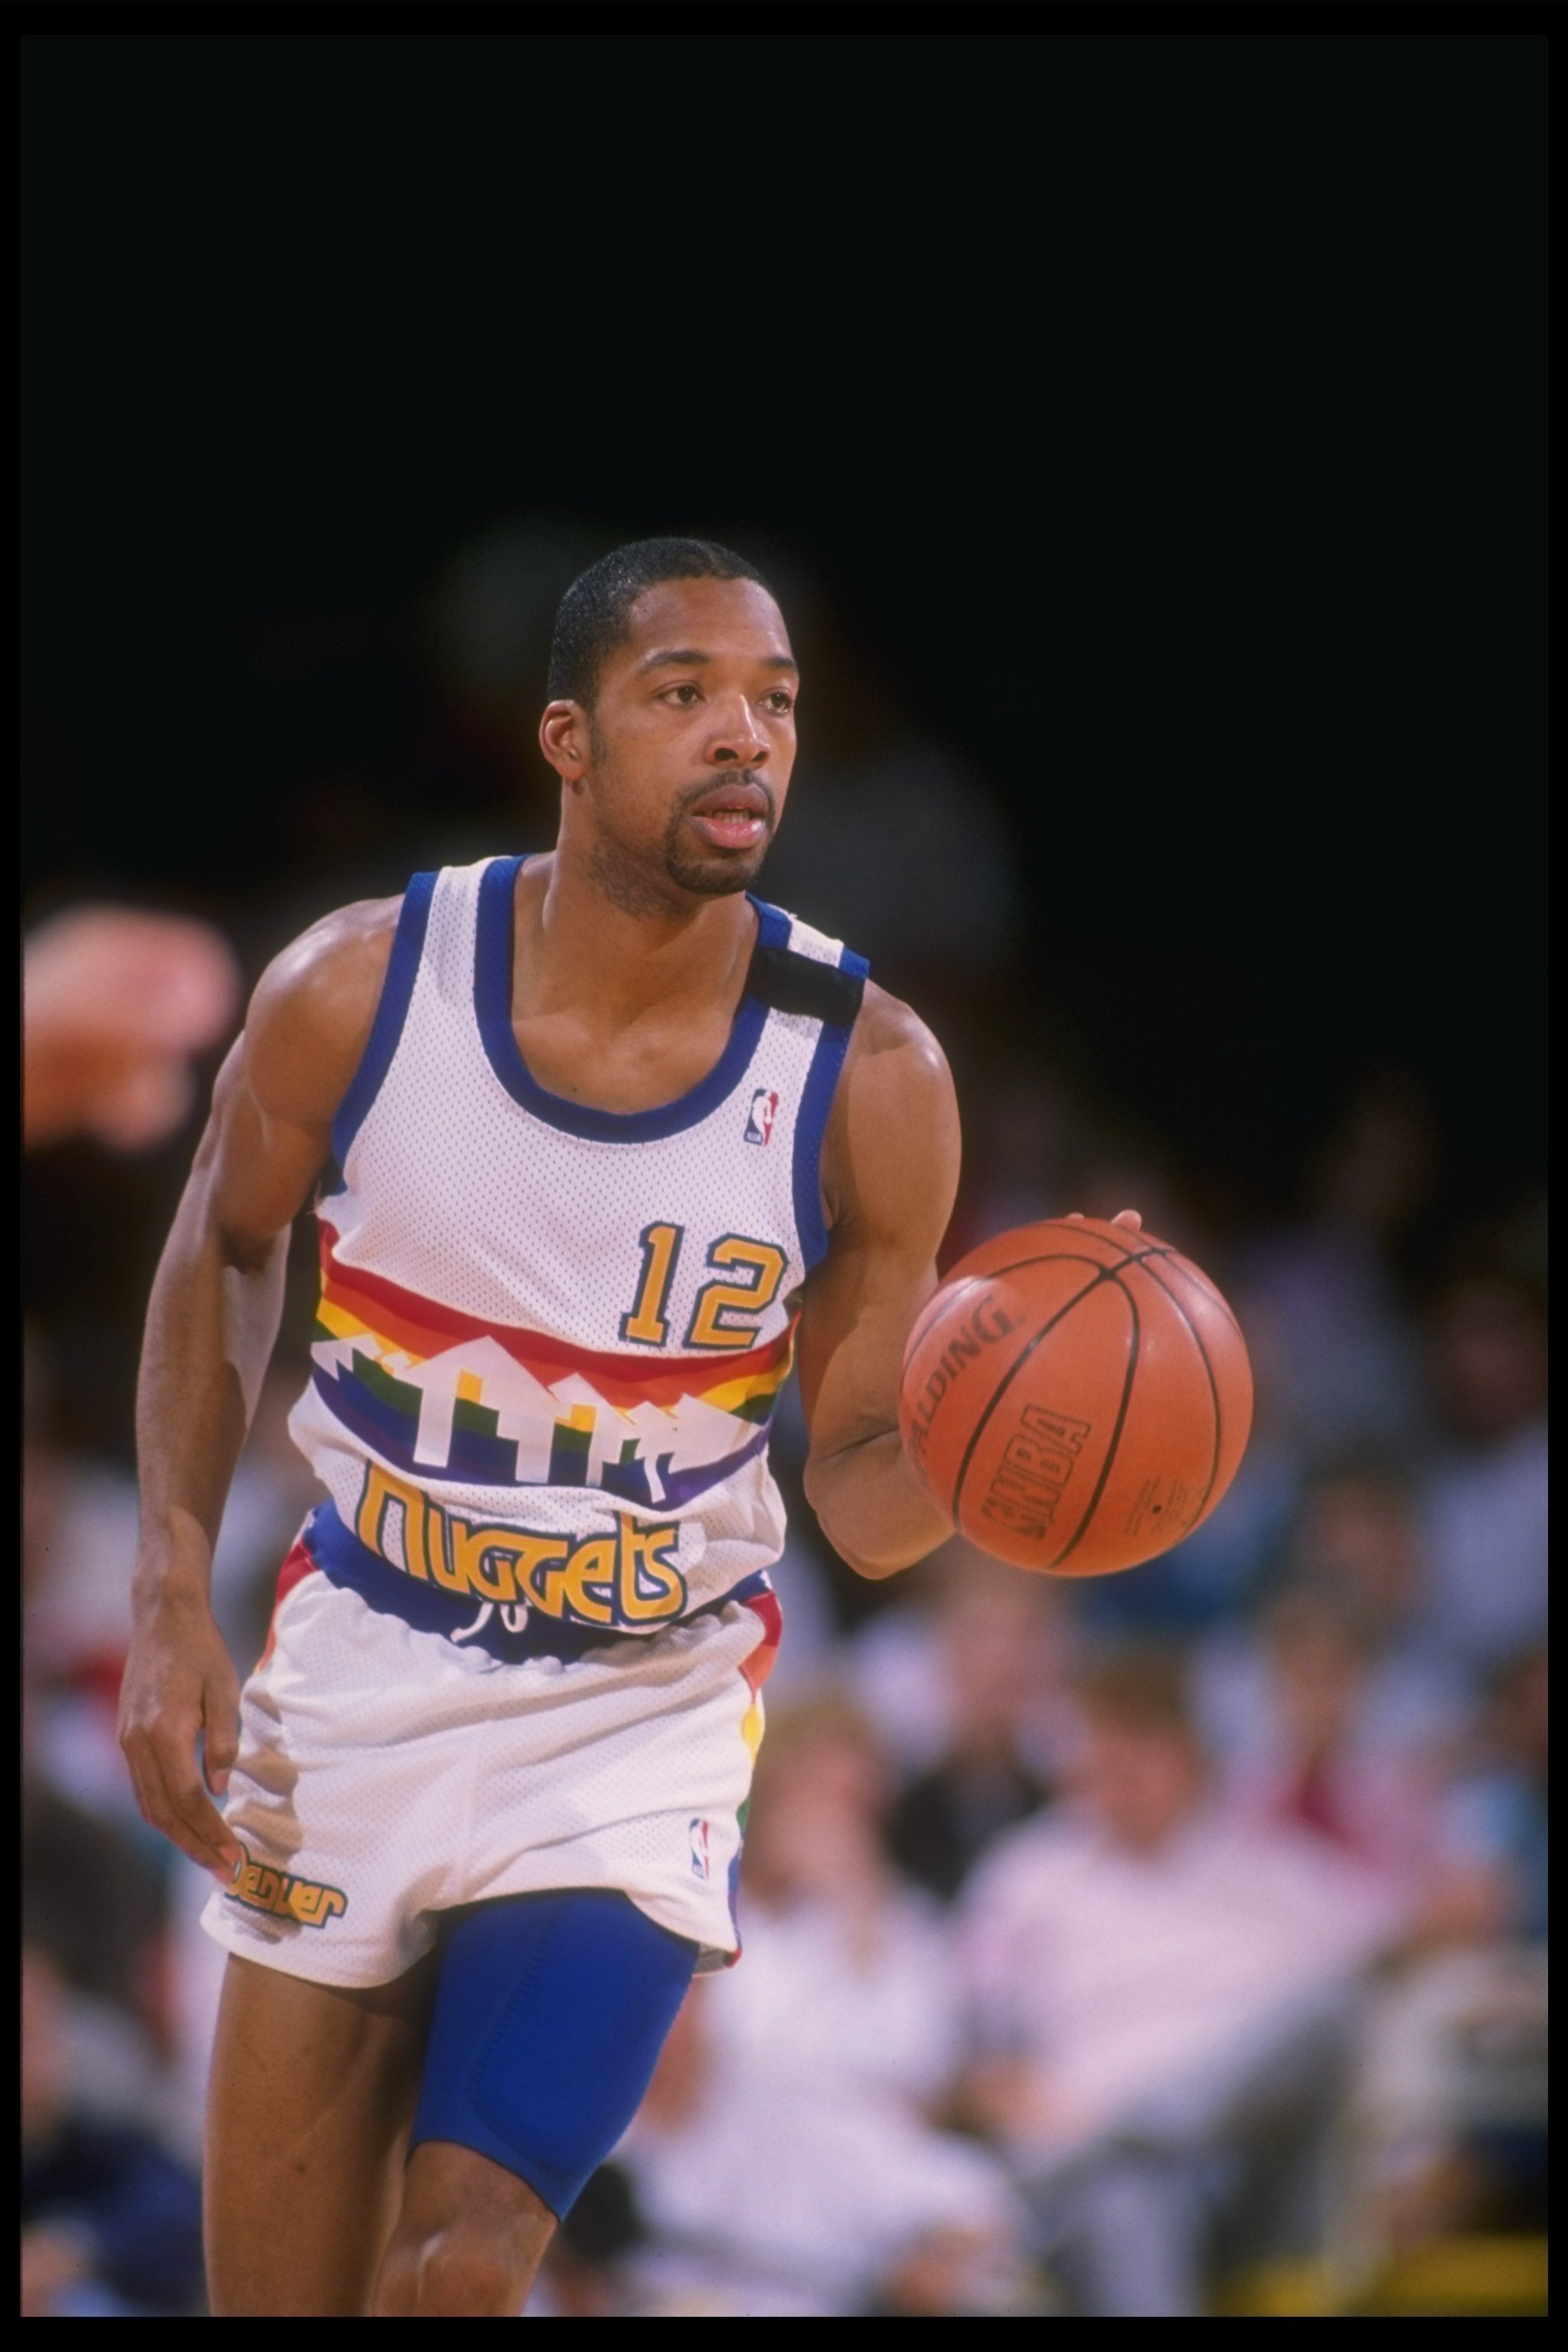 1989-1990:  Guard Fat Lever of the Denver Nuggets moves the ball during a game at the McNichols Sports Arena in Denver, Colorado. Mandatory Credit: Tim DeFrisco  /Allsport Mandatory Credit: Tim DeFrisco  /Allsport